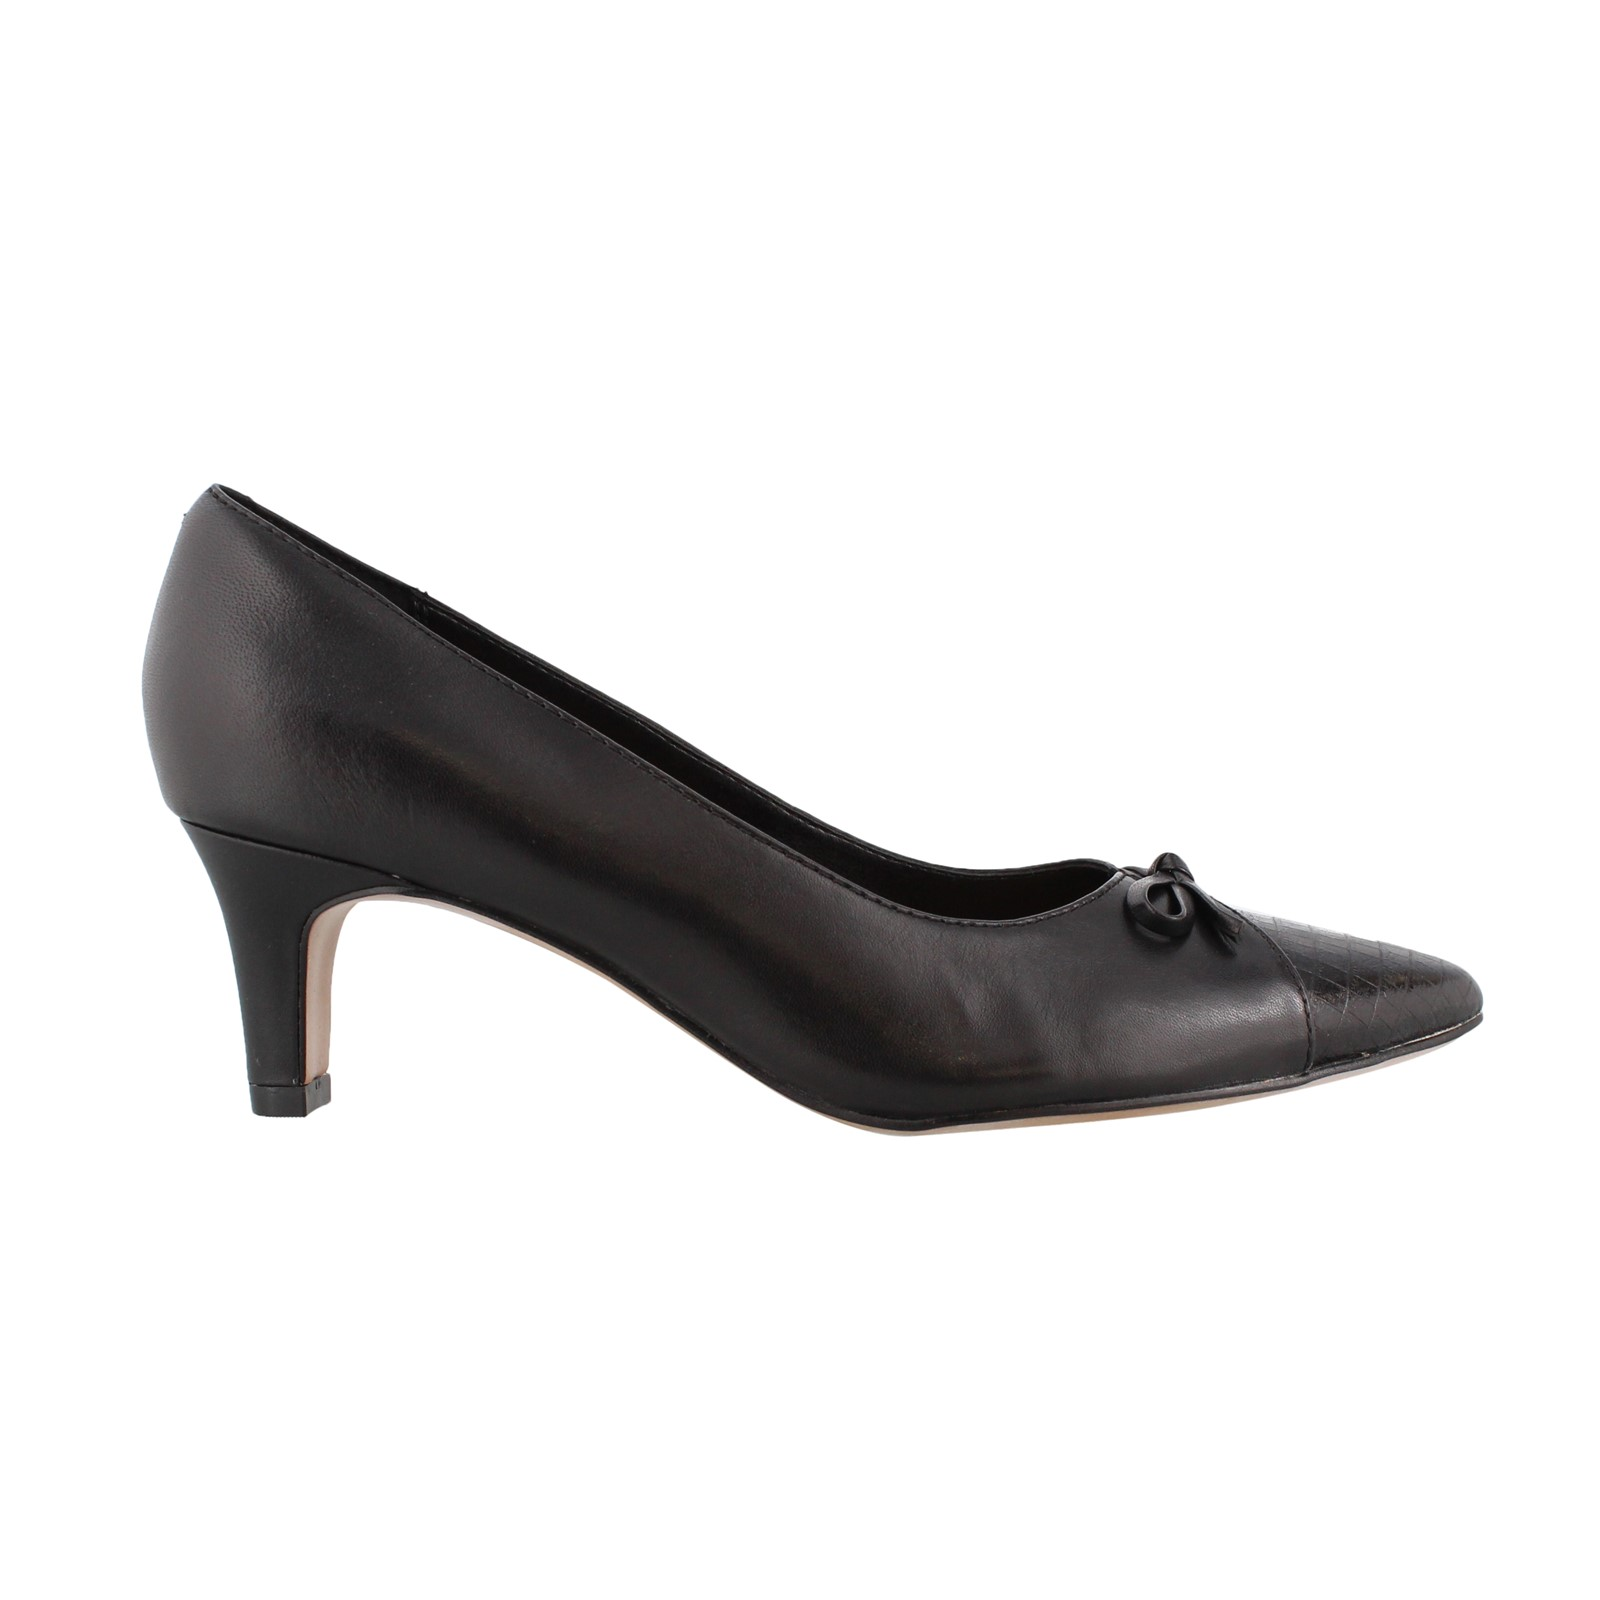 Women's Clarks, Crewso Calica Mid Heel Pumps